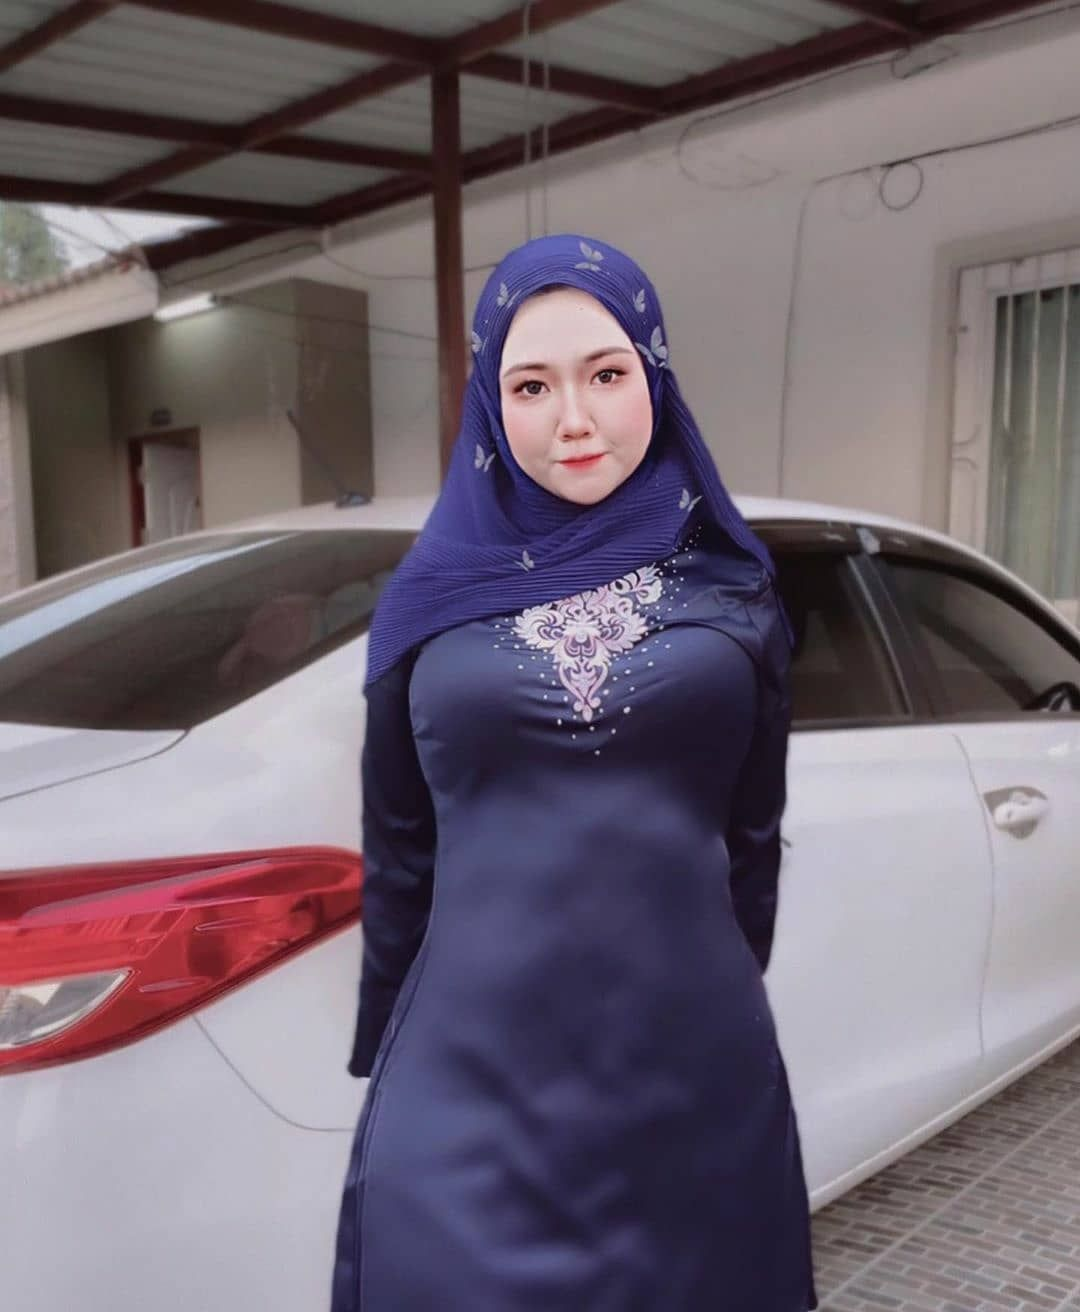 502 Sukaan 0 Komen Fatyn Not Faty Fatynvy Pada Instagram Happy Coveid Fitri In 2020 Muslimah Fashion Outfits Modern Hijab Fashion Muslim Women Hijab